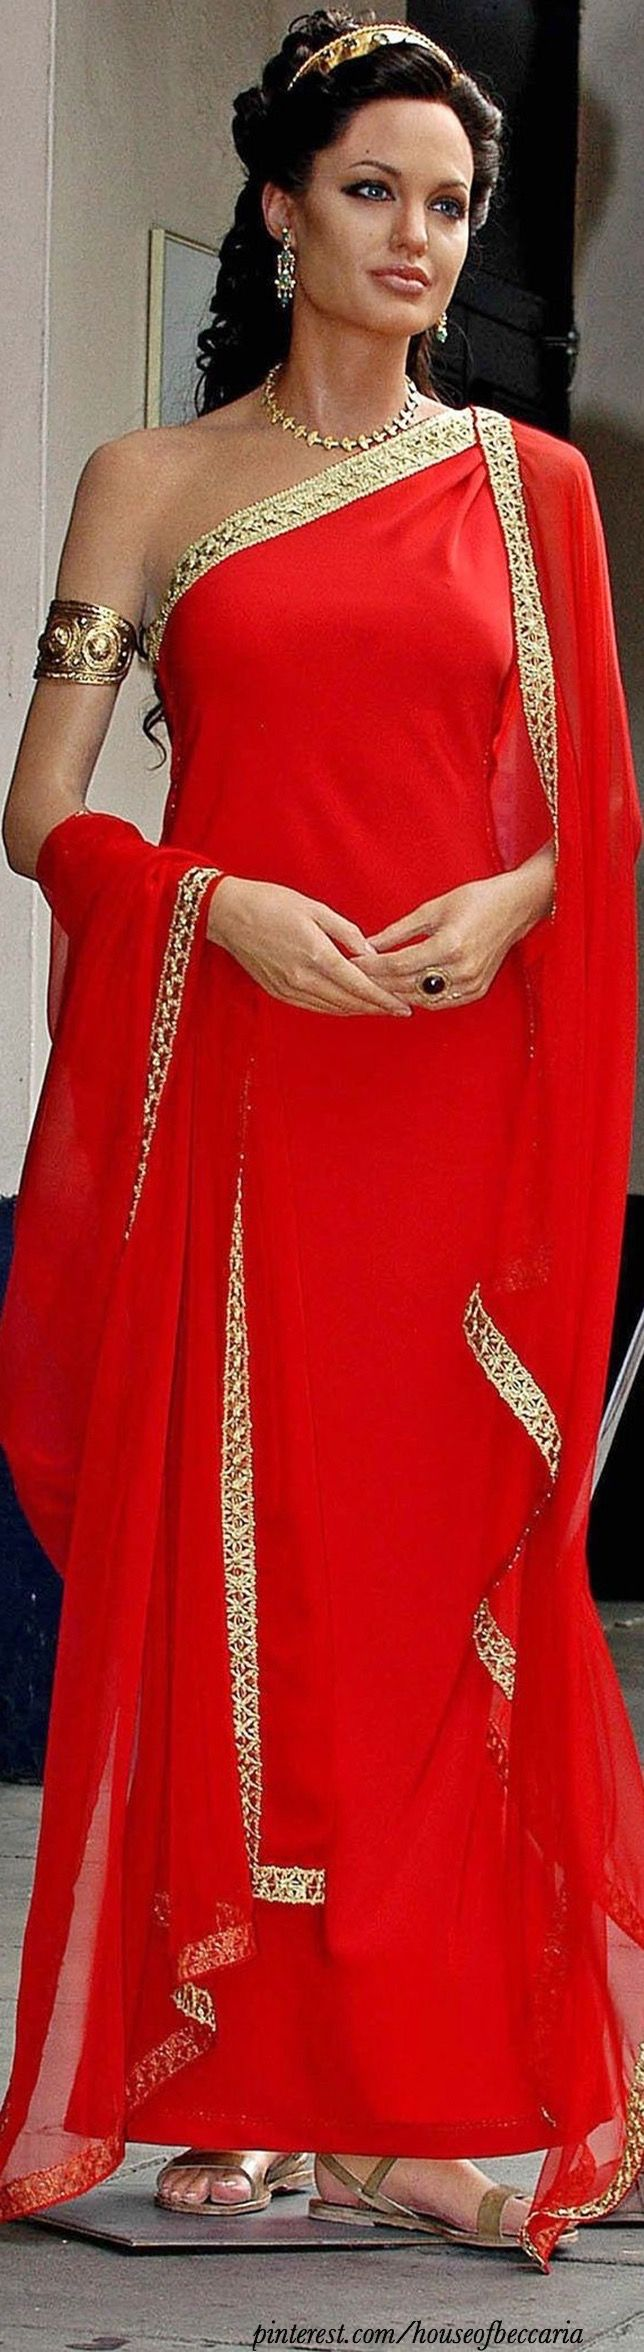 ~Angelina Jolie in Alexander, Red Grecian Dress   The House of Beccaria